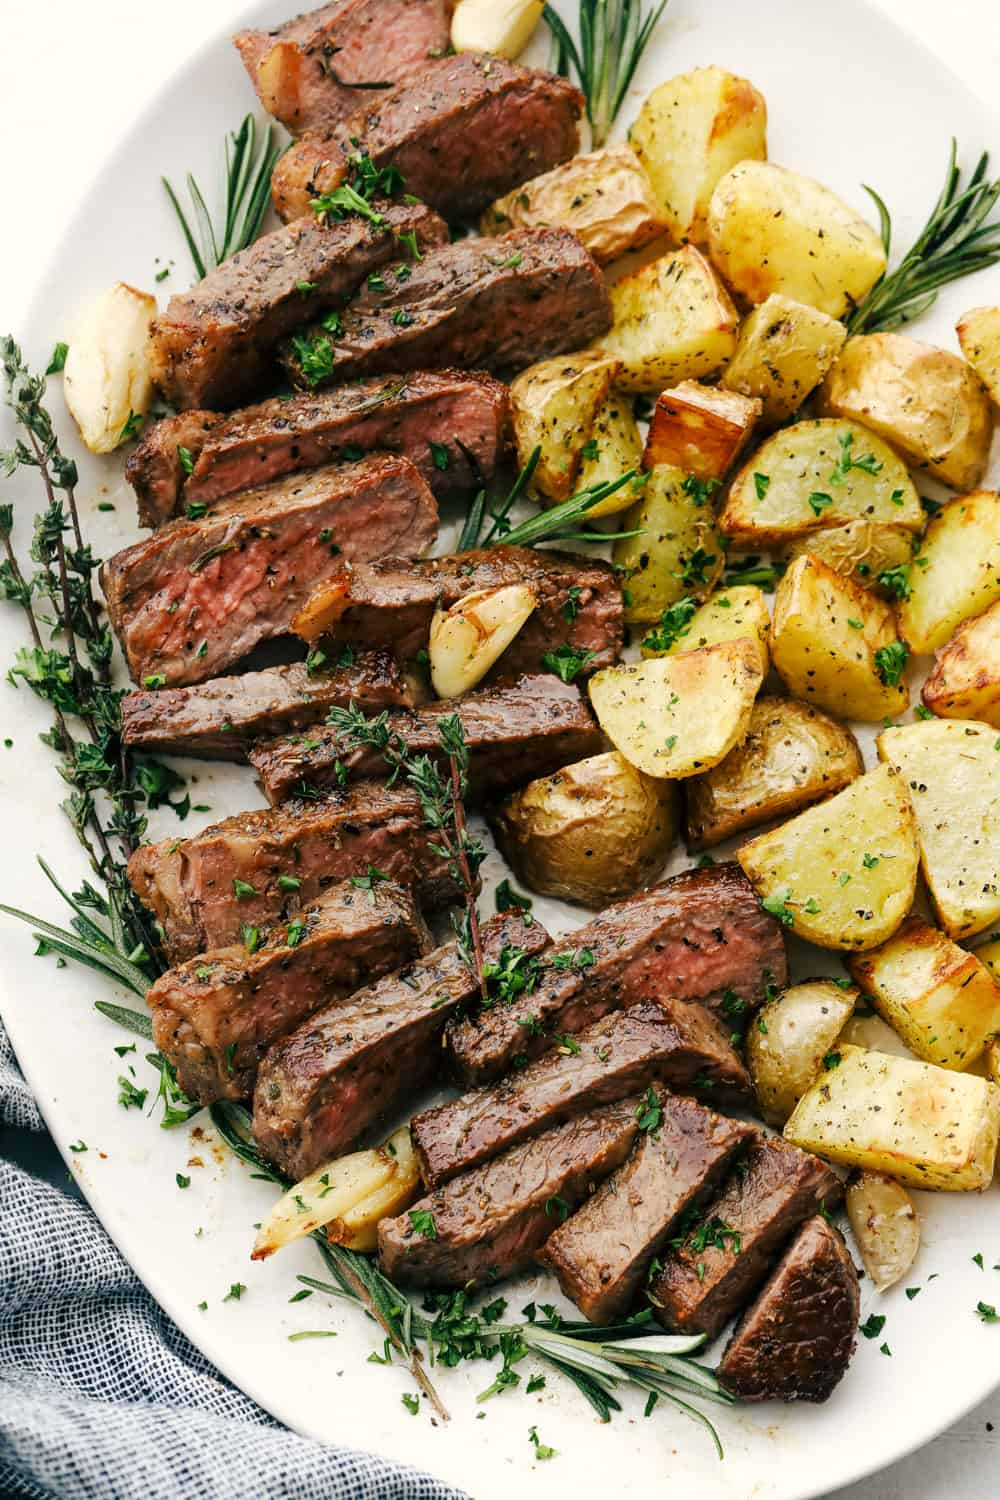 Cut up steak and potatoes on a white plate.